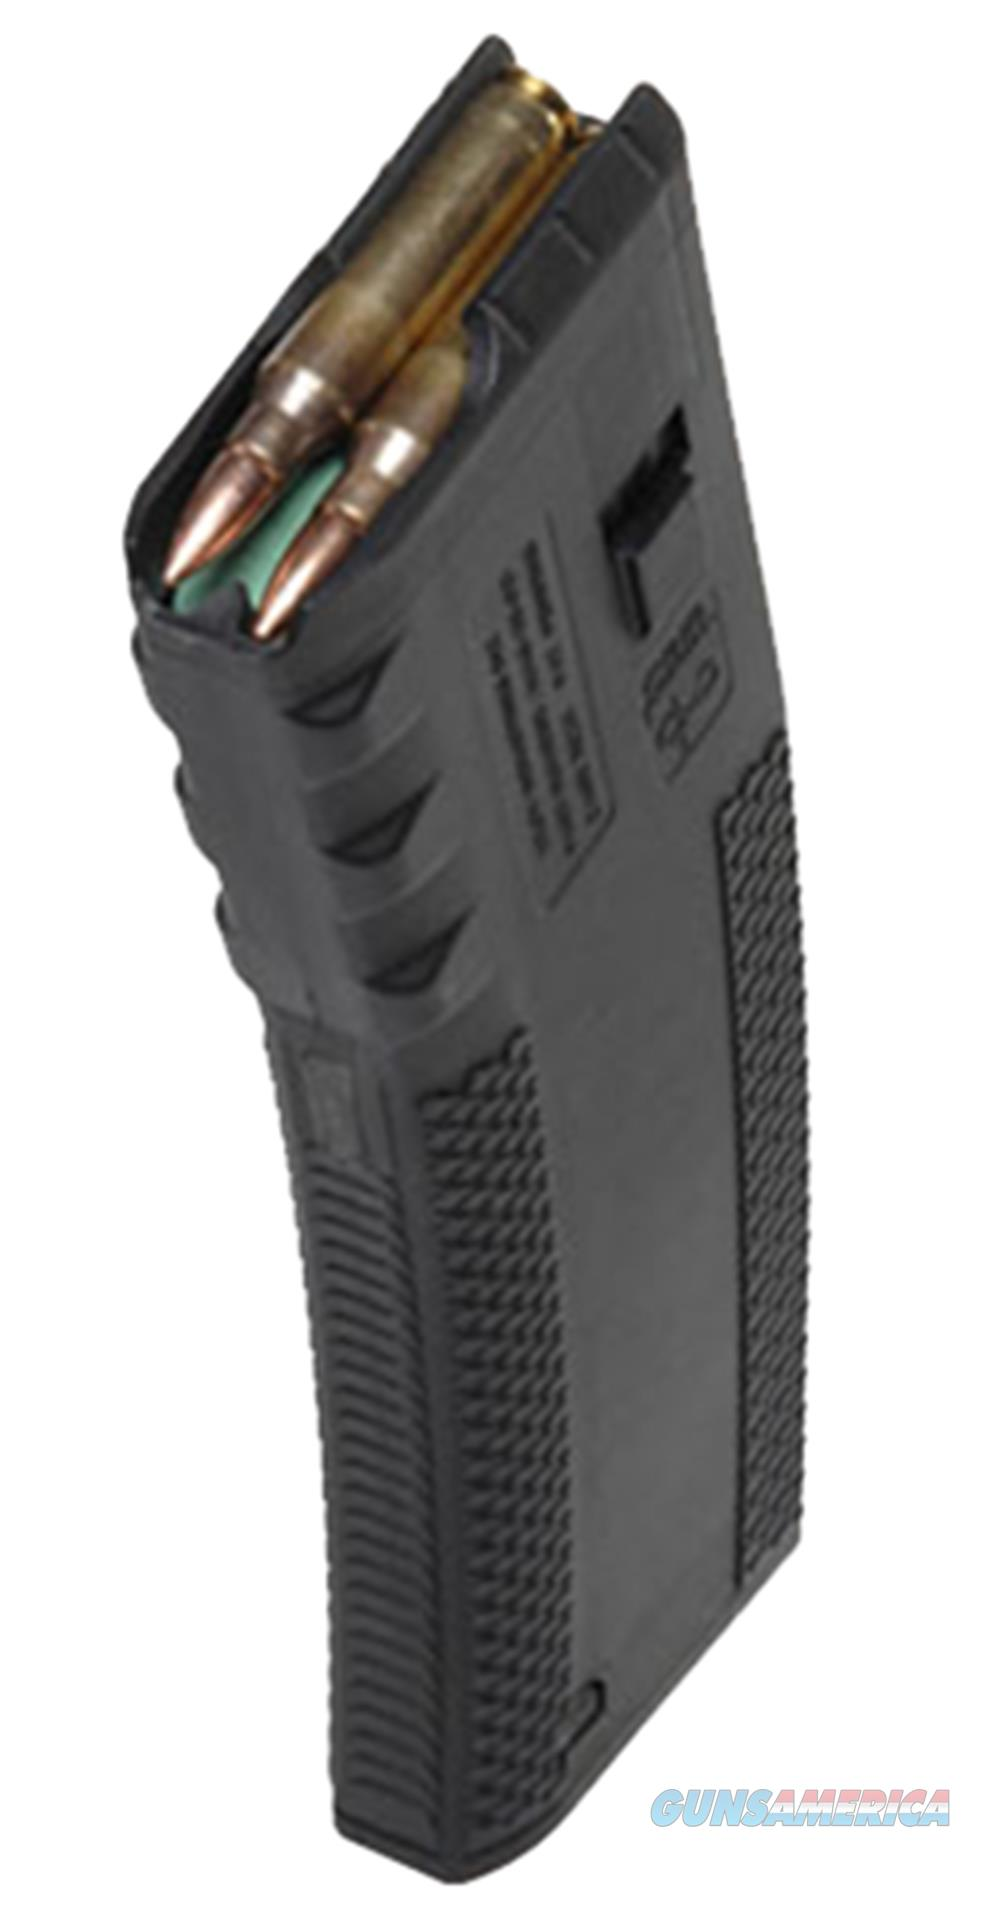 TROY AR-15 Magazine 30rd Battlemag USA Polymer MAG  Non-Guns > Magazines & Clips > Rifle Magazines > AR-15 Type